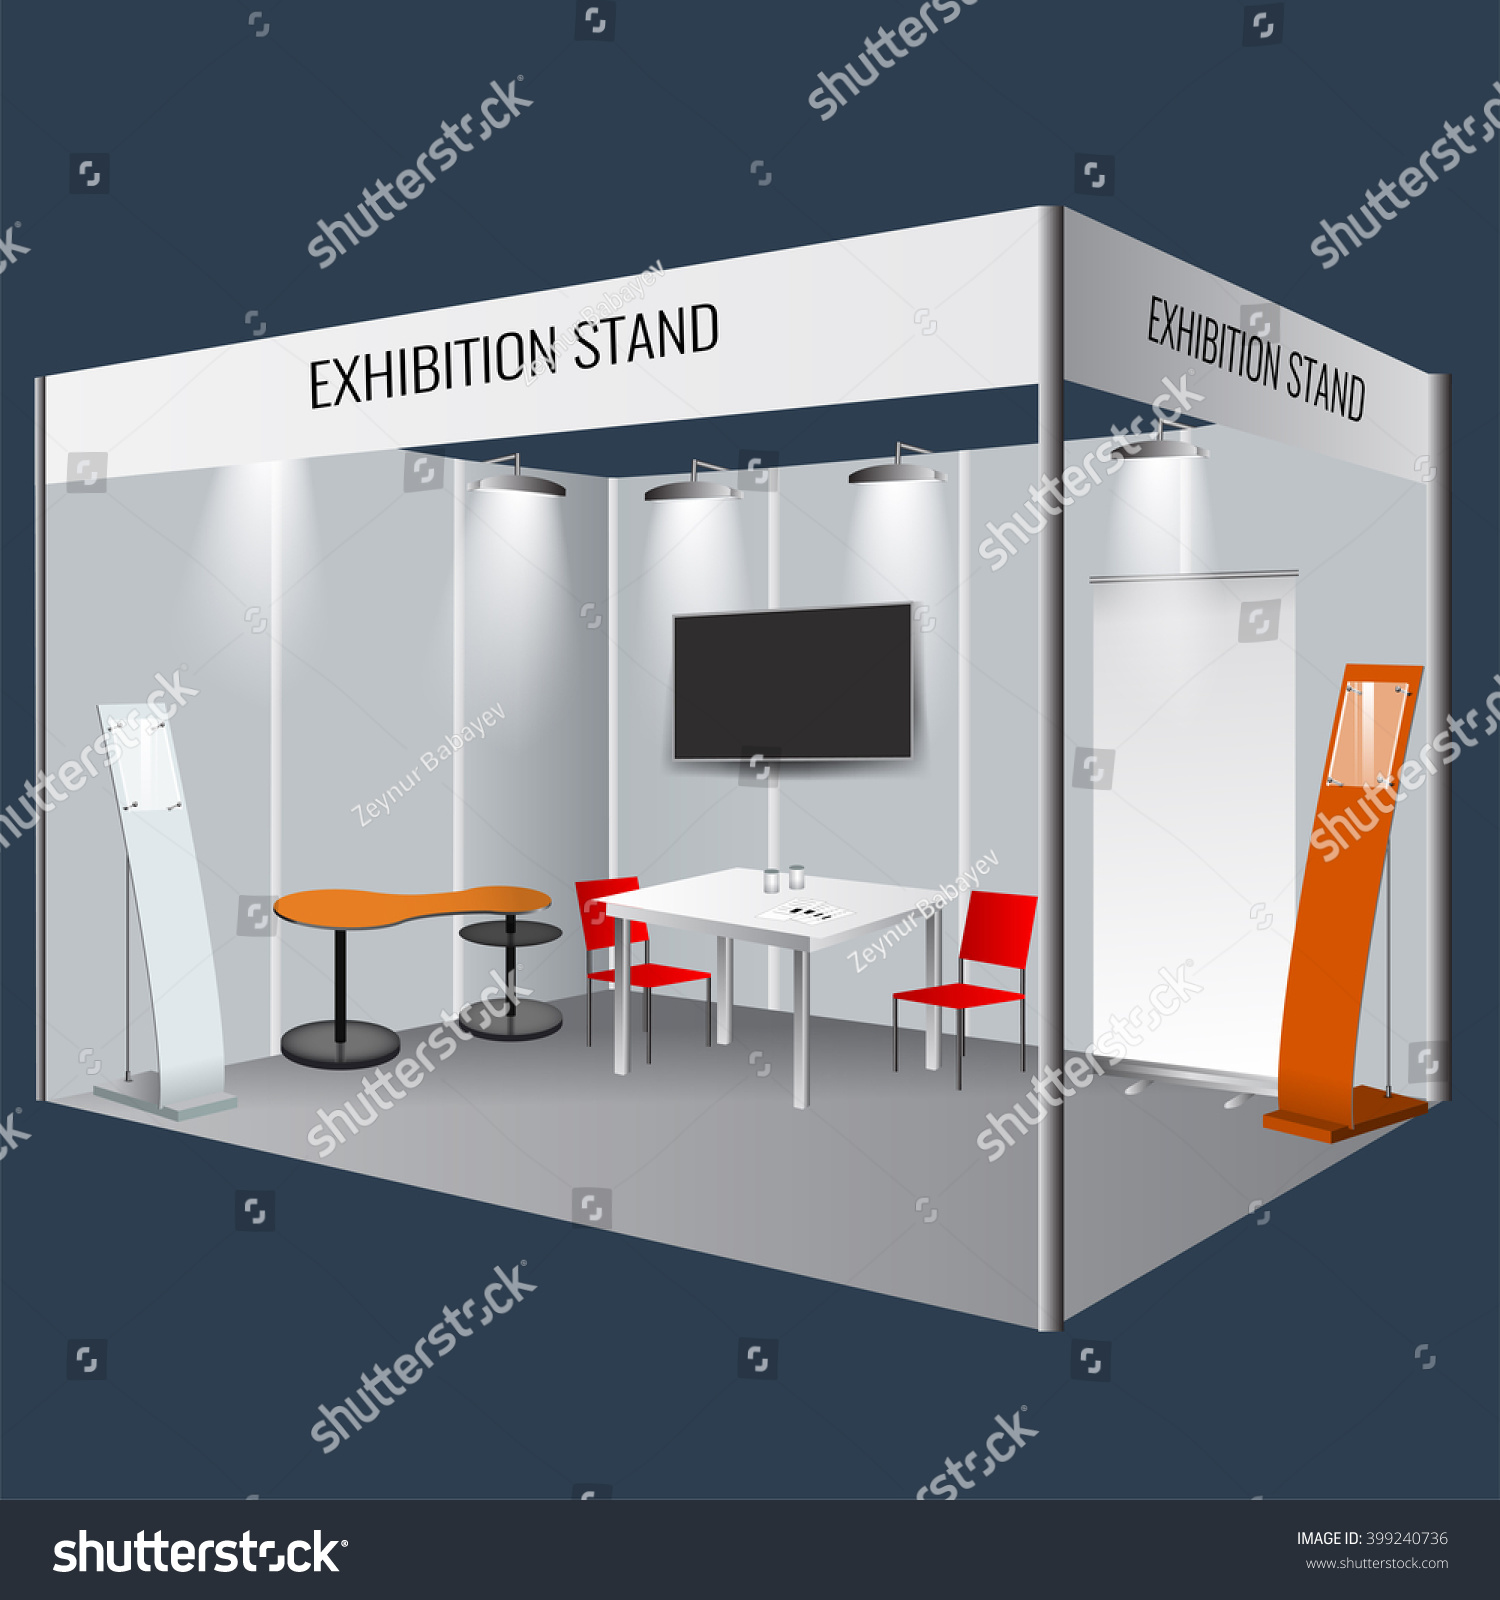 Exhibition Stand Vector : Illustrated unique creative exhibition stand display stock